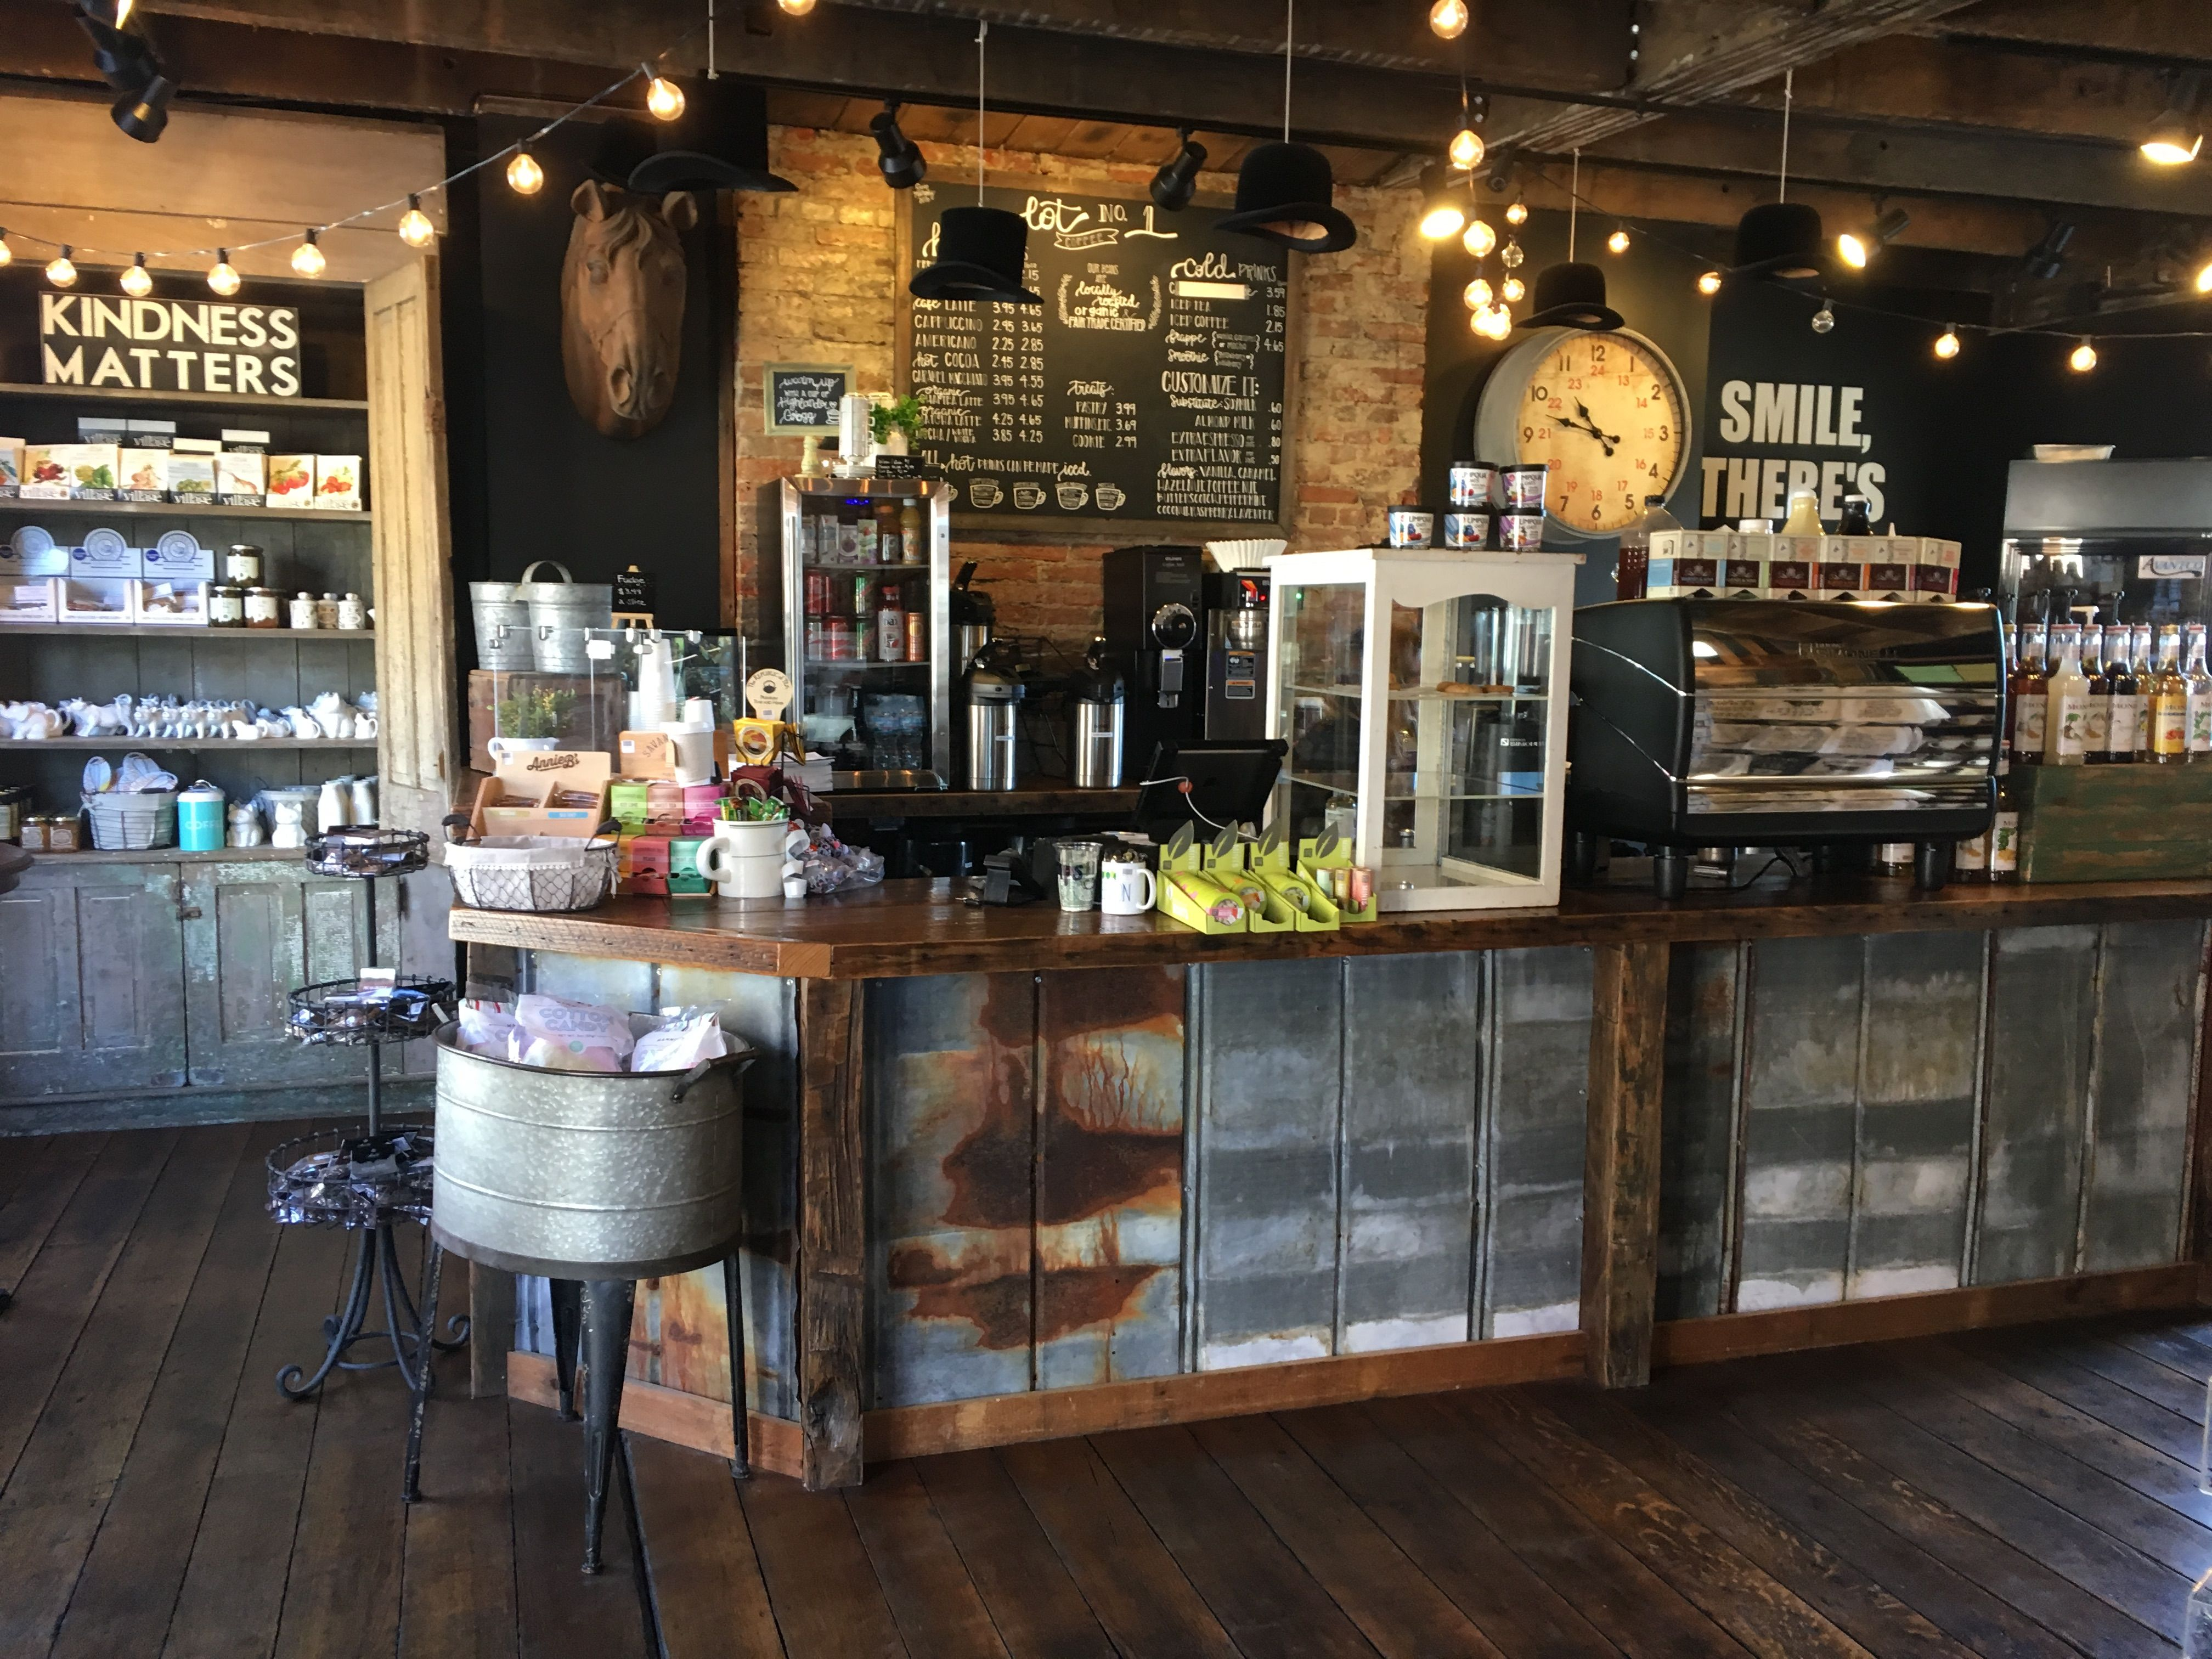 Lot No 1 Coffee Shop In Lebanon Ohio Coffee Shop Coffee Pictures Metaphysical Shop